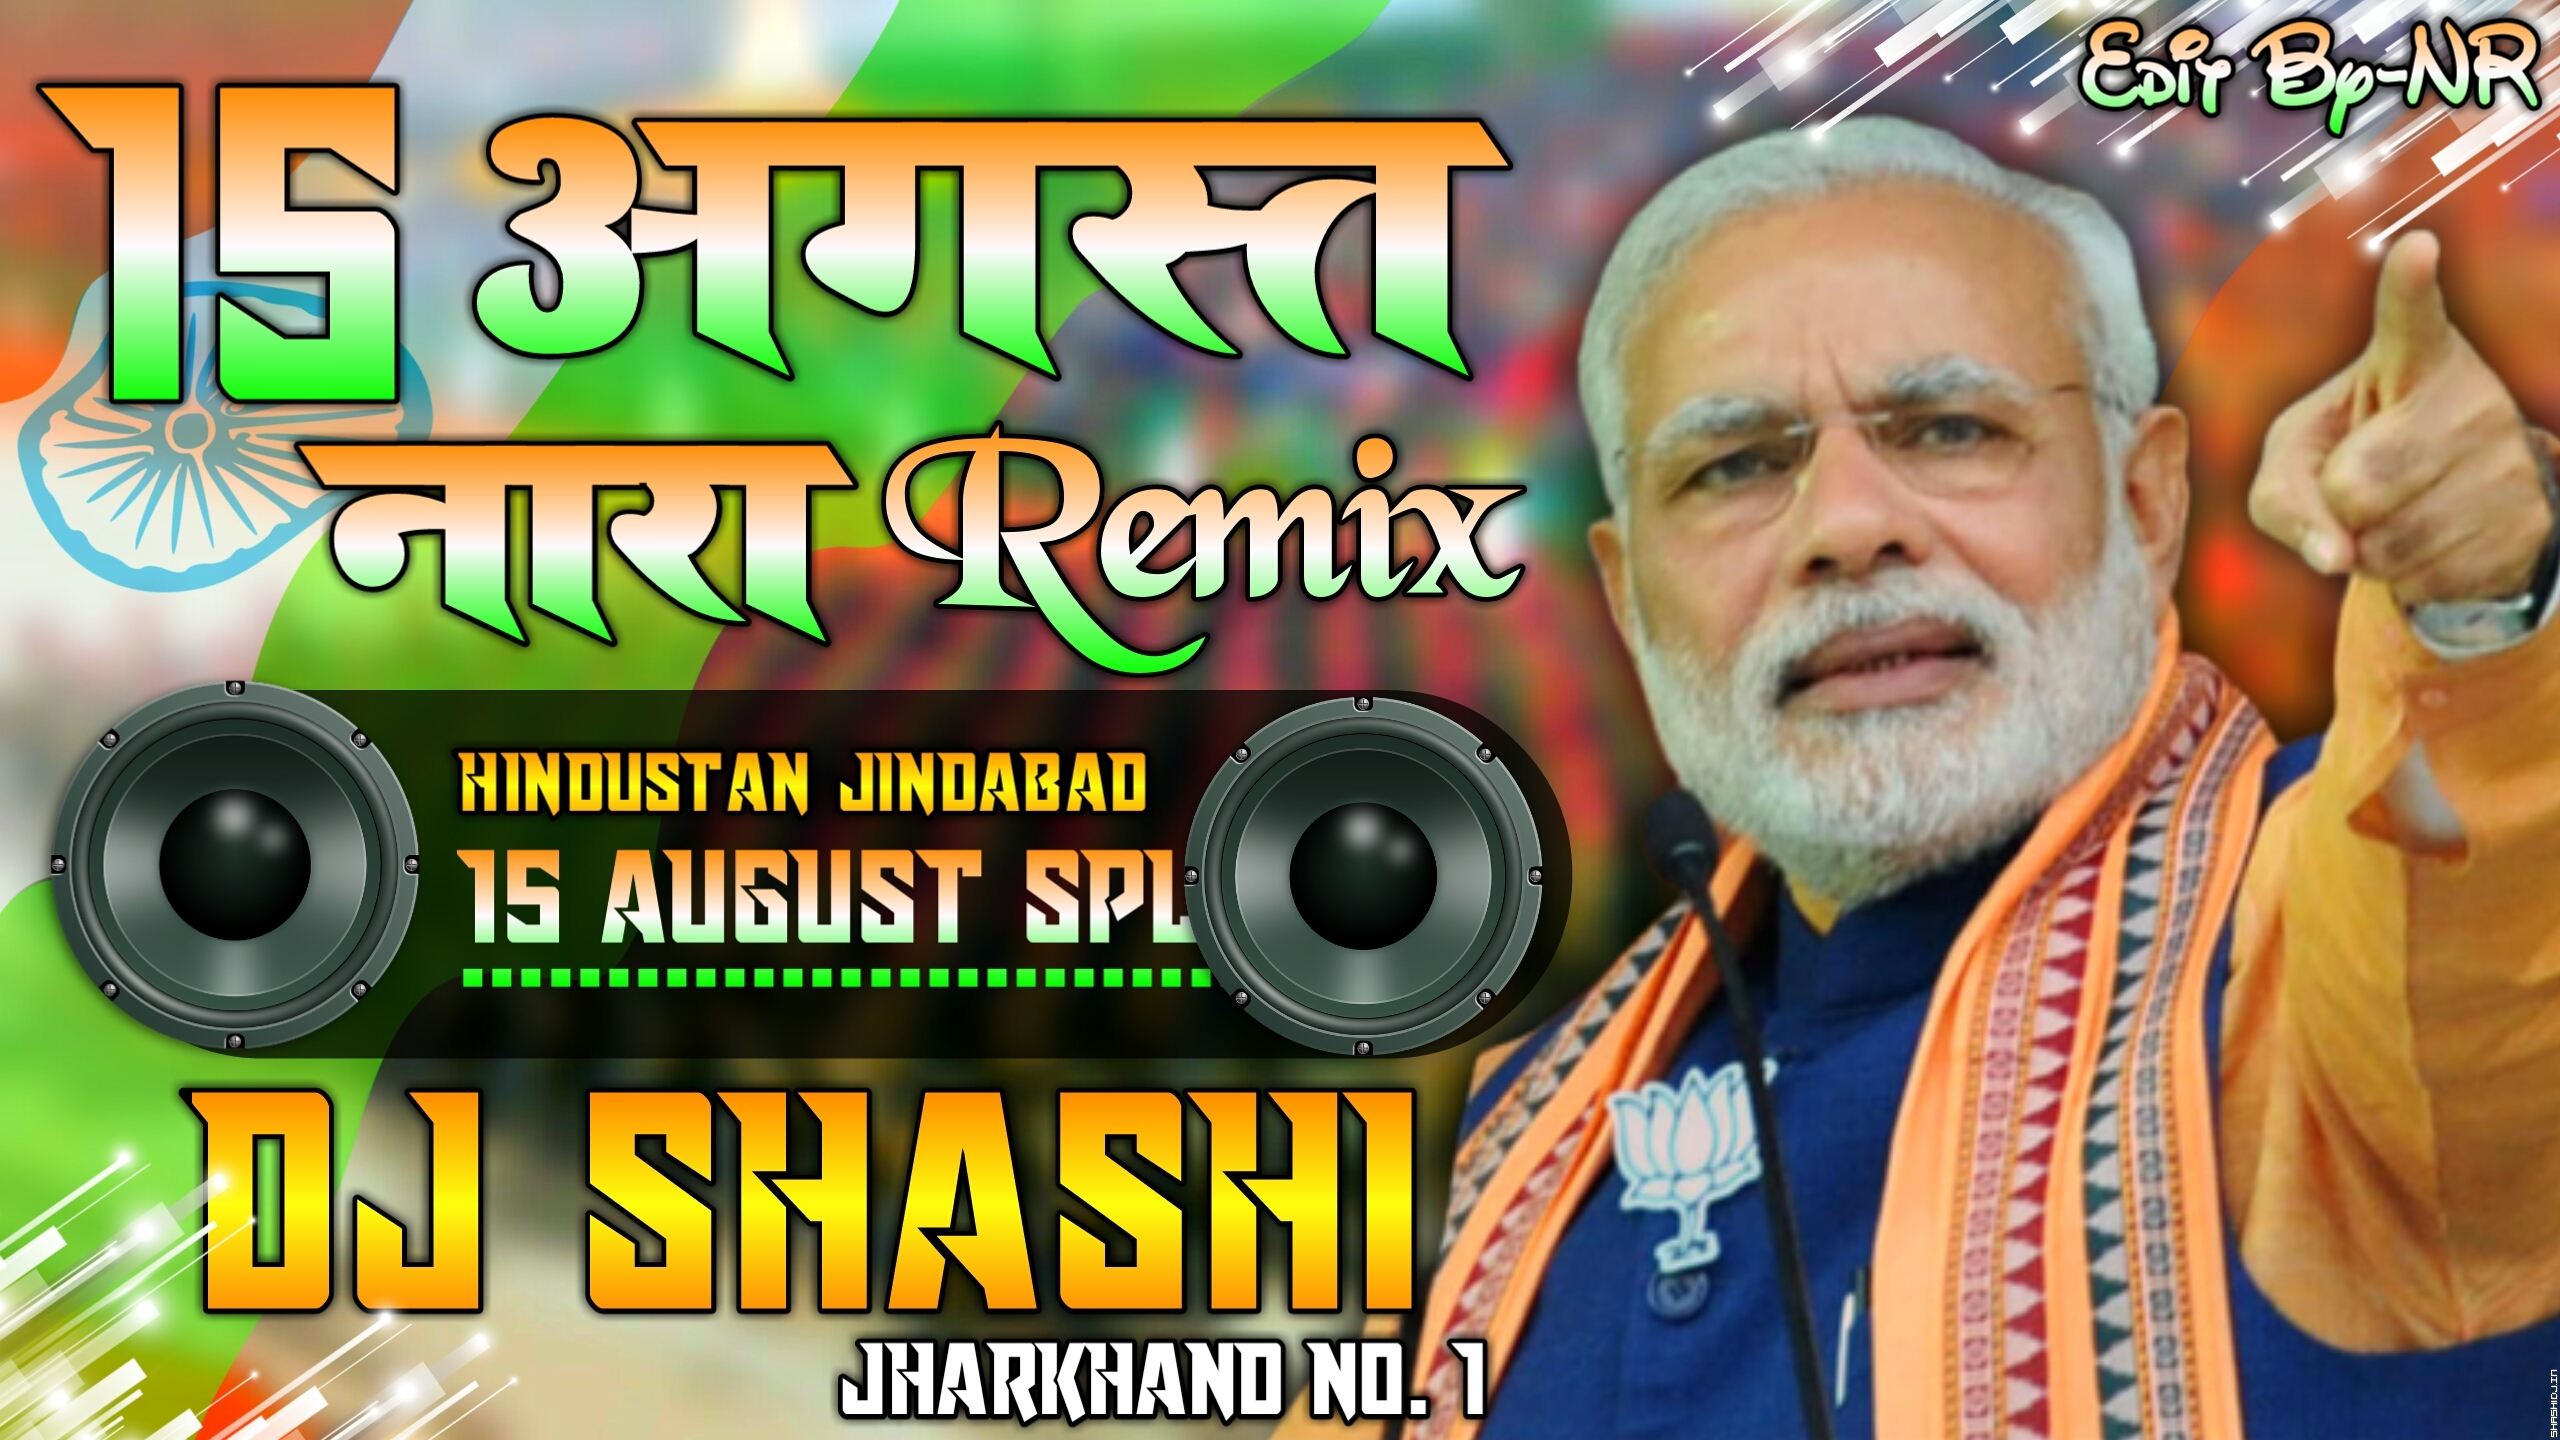 15 August Indipendece Day Speacial Remix.mp3